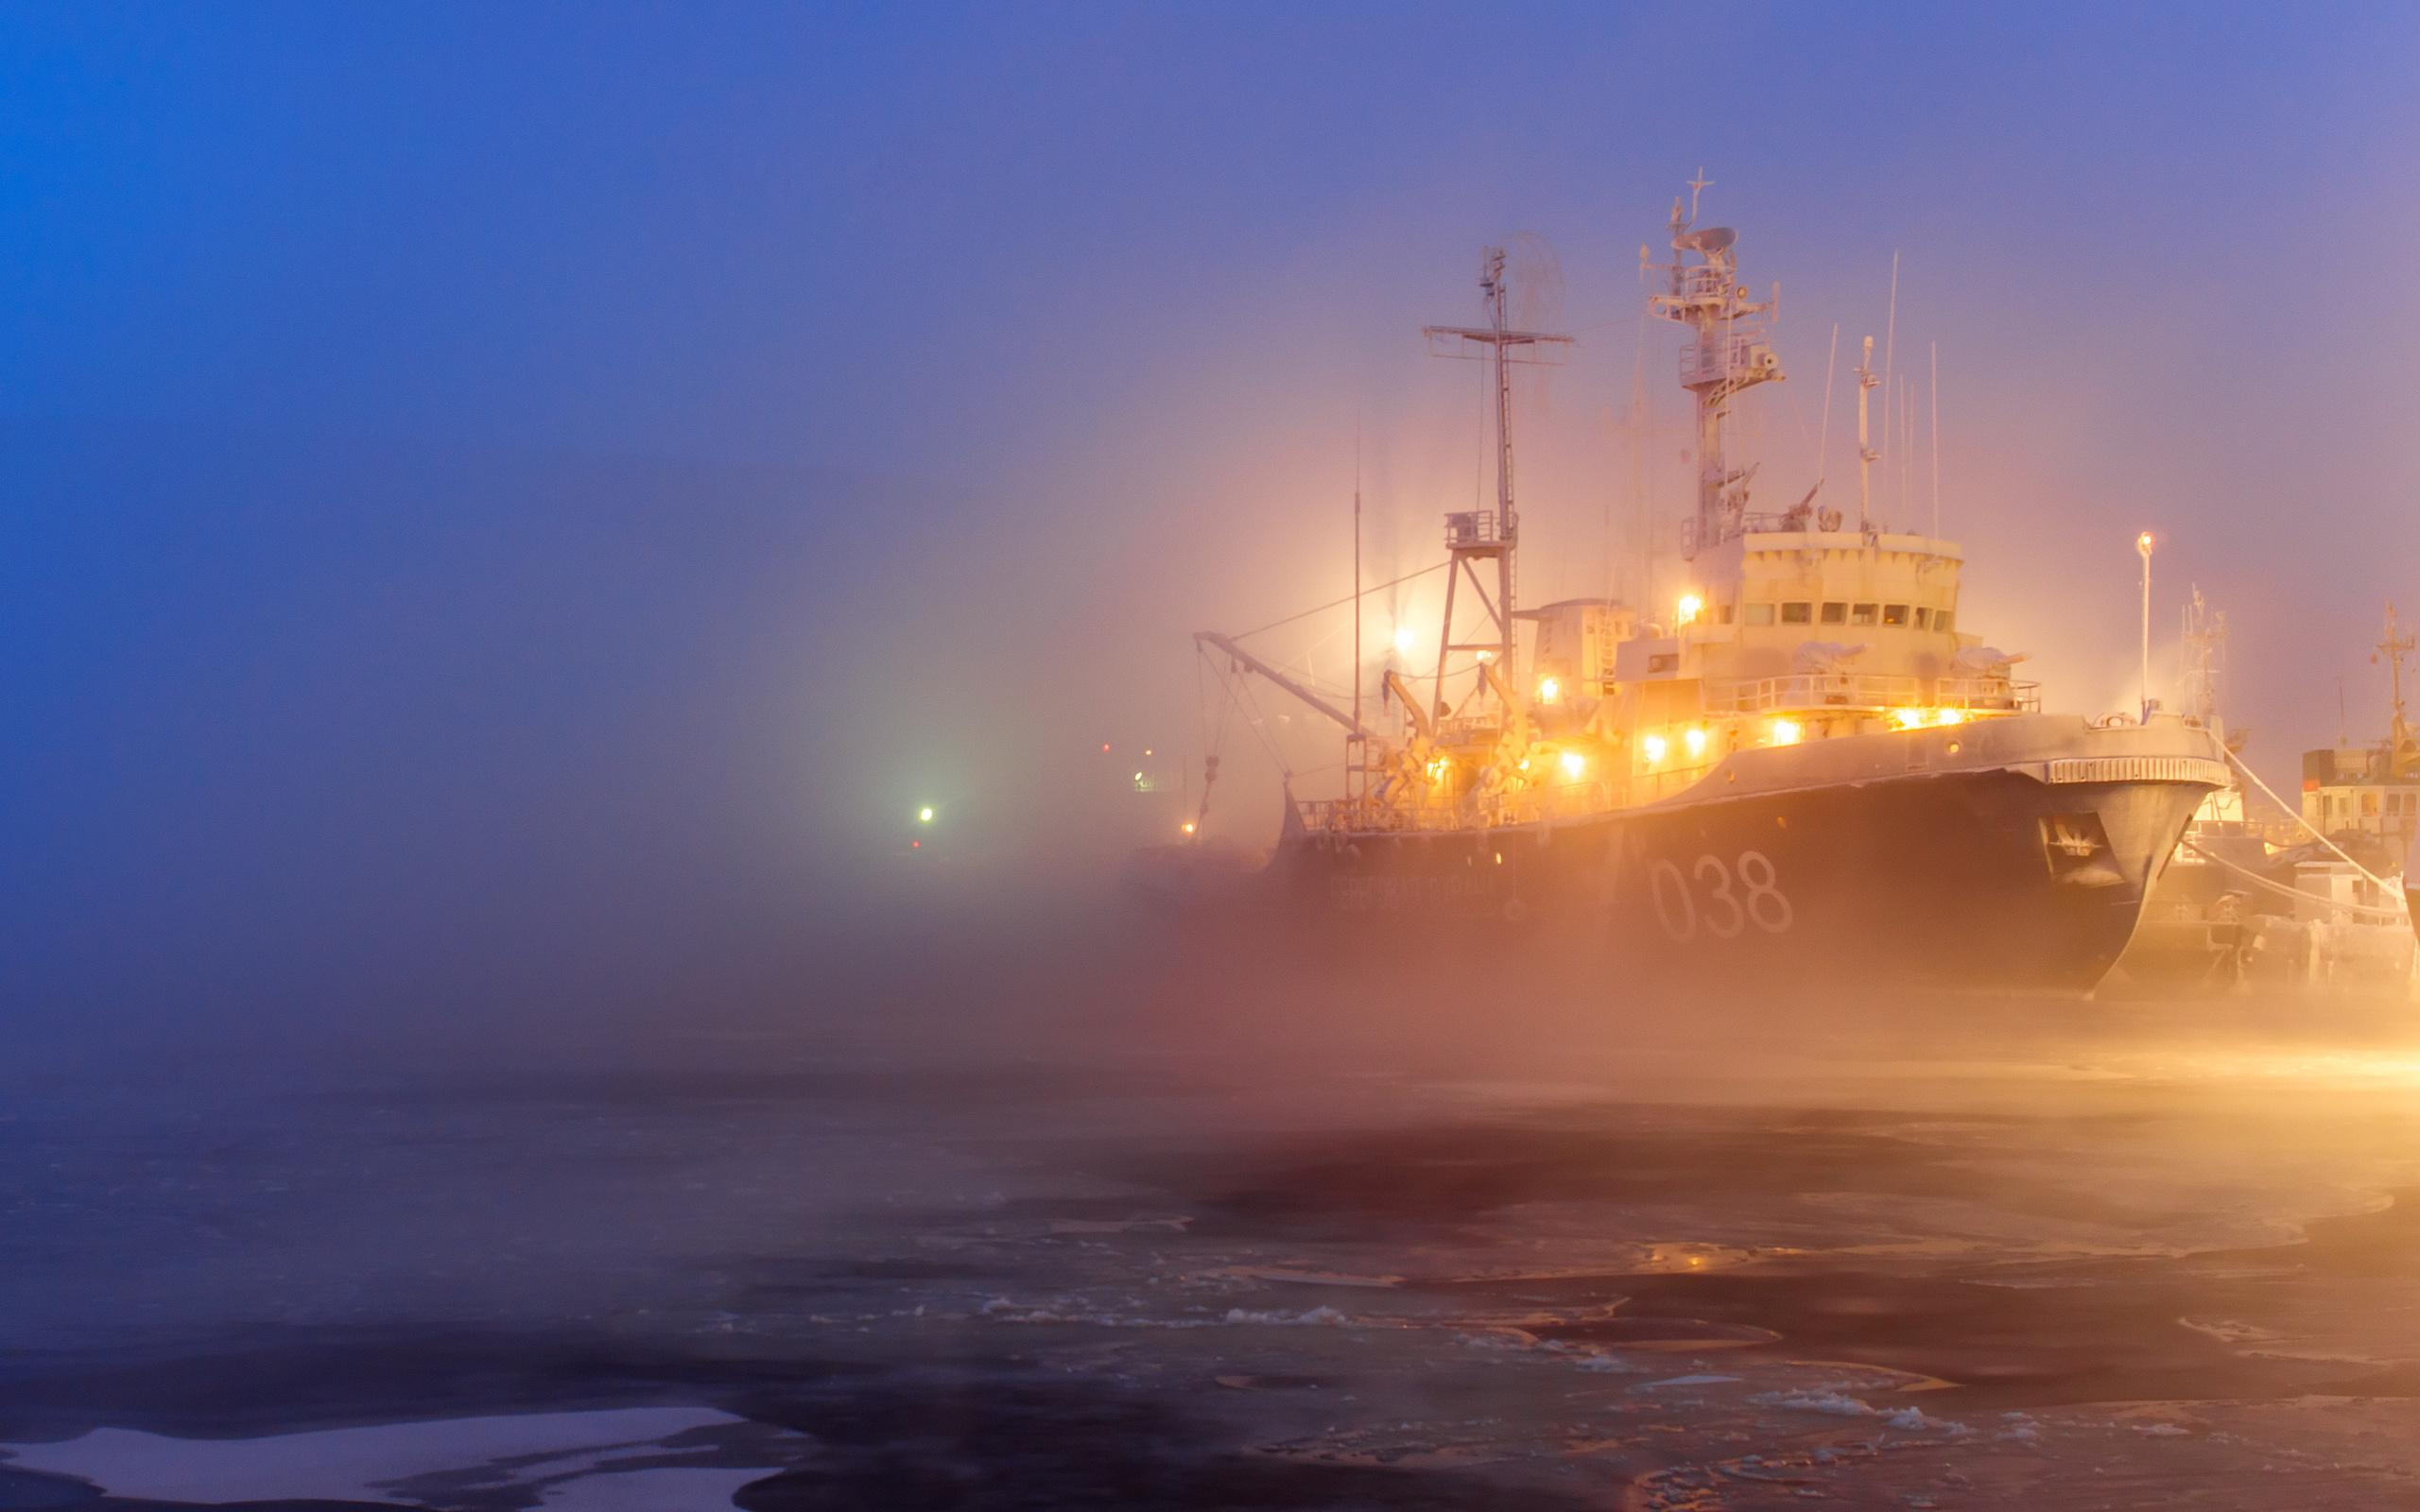 Christmas Desktop Wallpaper Animated Free Hd Port Ice Ship Fog Lights Pictures For Desktop Wallpaper